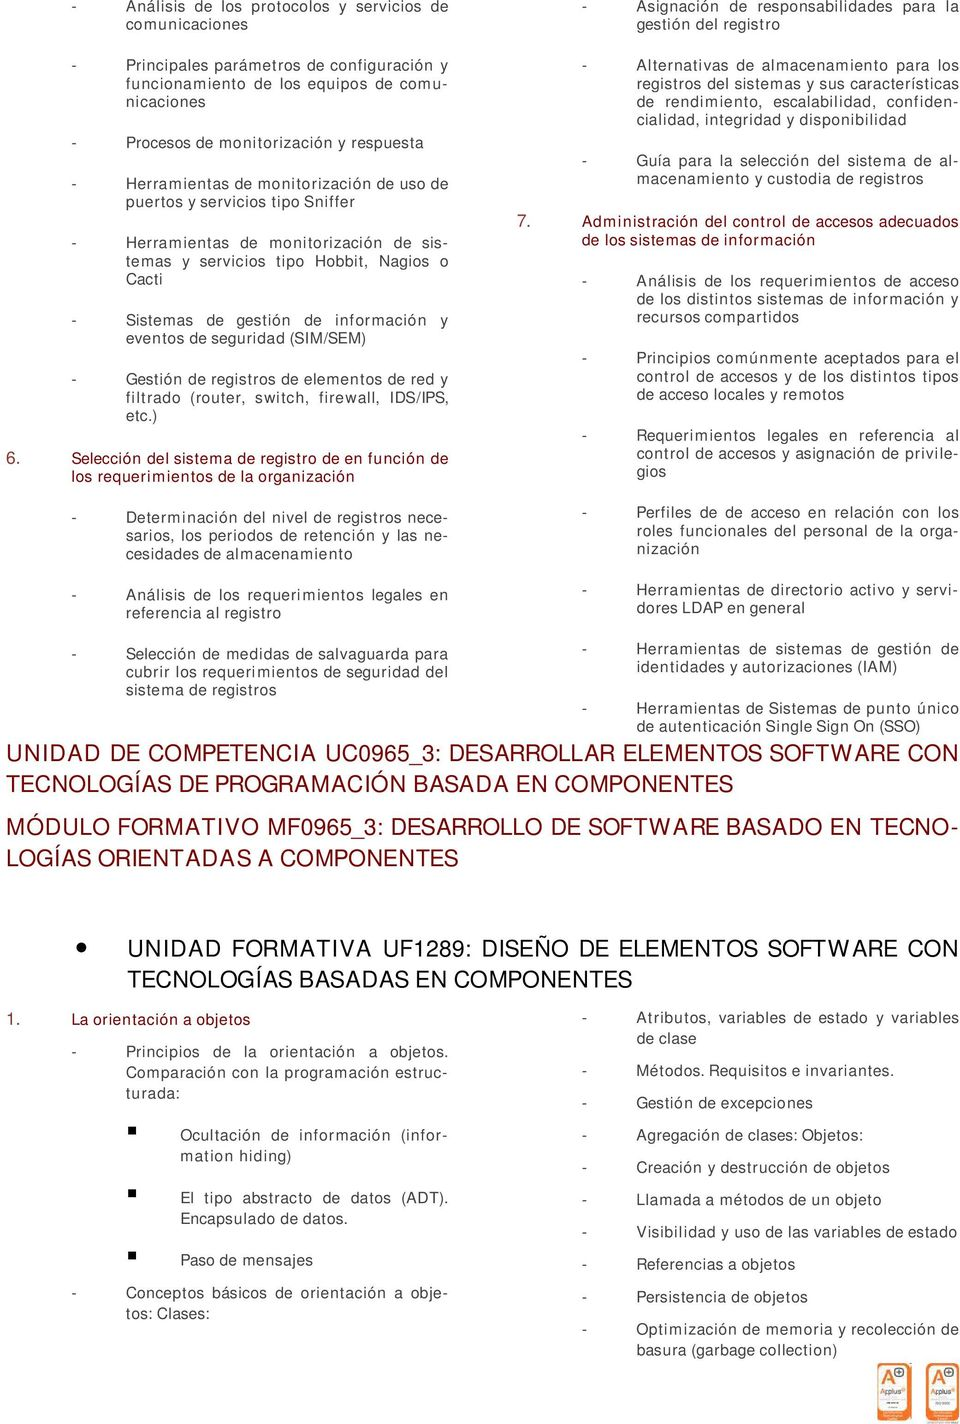 eventos de seguridad (SIM/SEM) - Gestión de registros de elementos de red y filtrado (router, switch, firewall, IDS/IPS, etc.) 6.